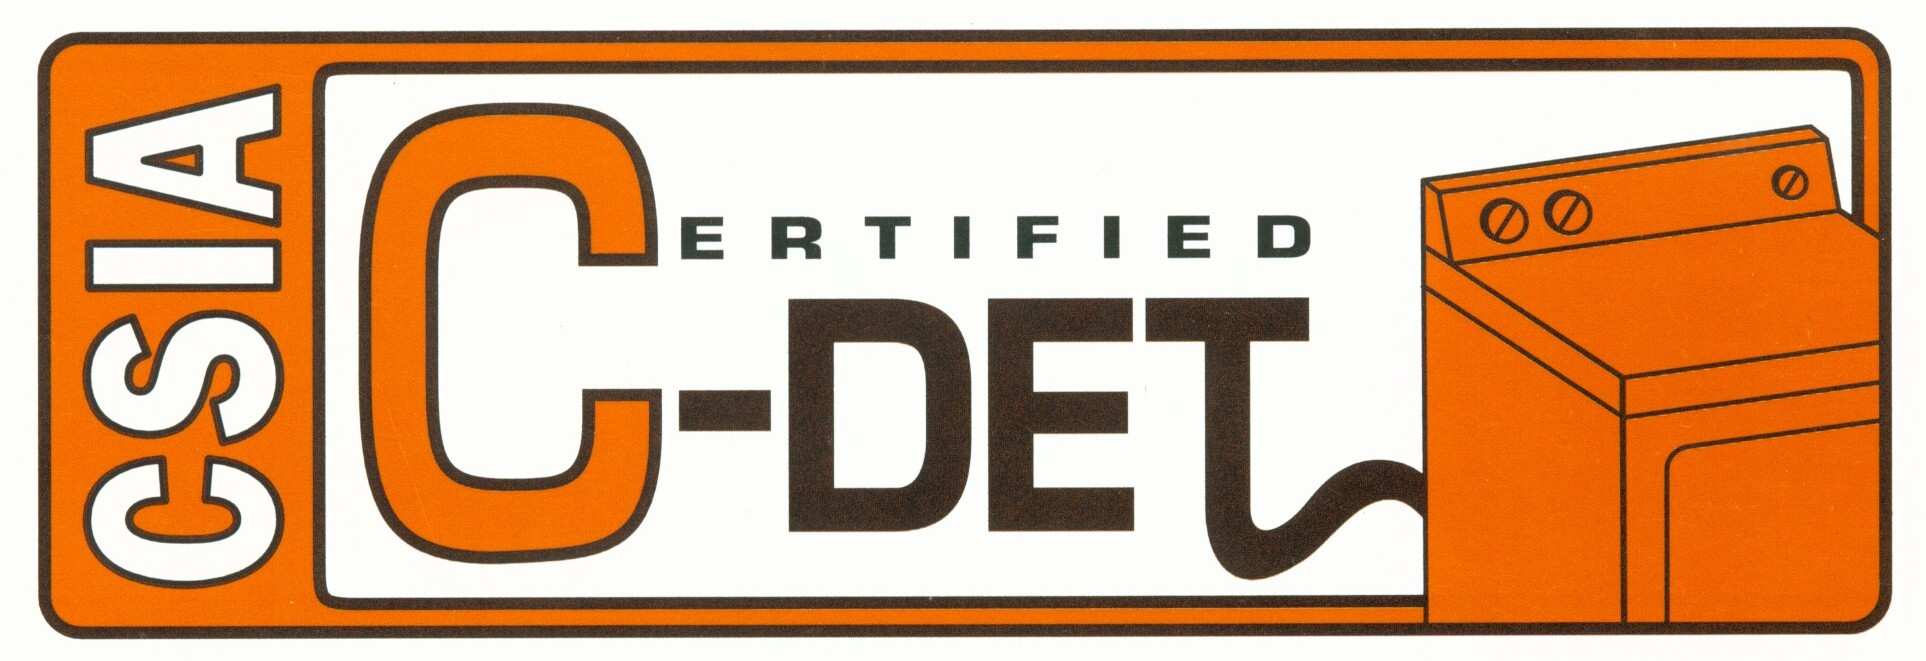 cdet-certification-tjs-chimney-service-dryer-vent-cleaning-indianapolis-indiana